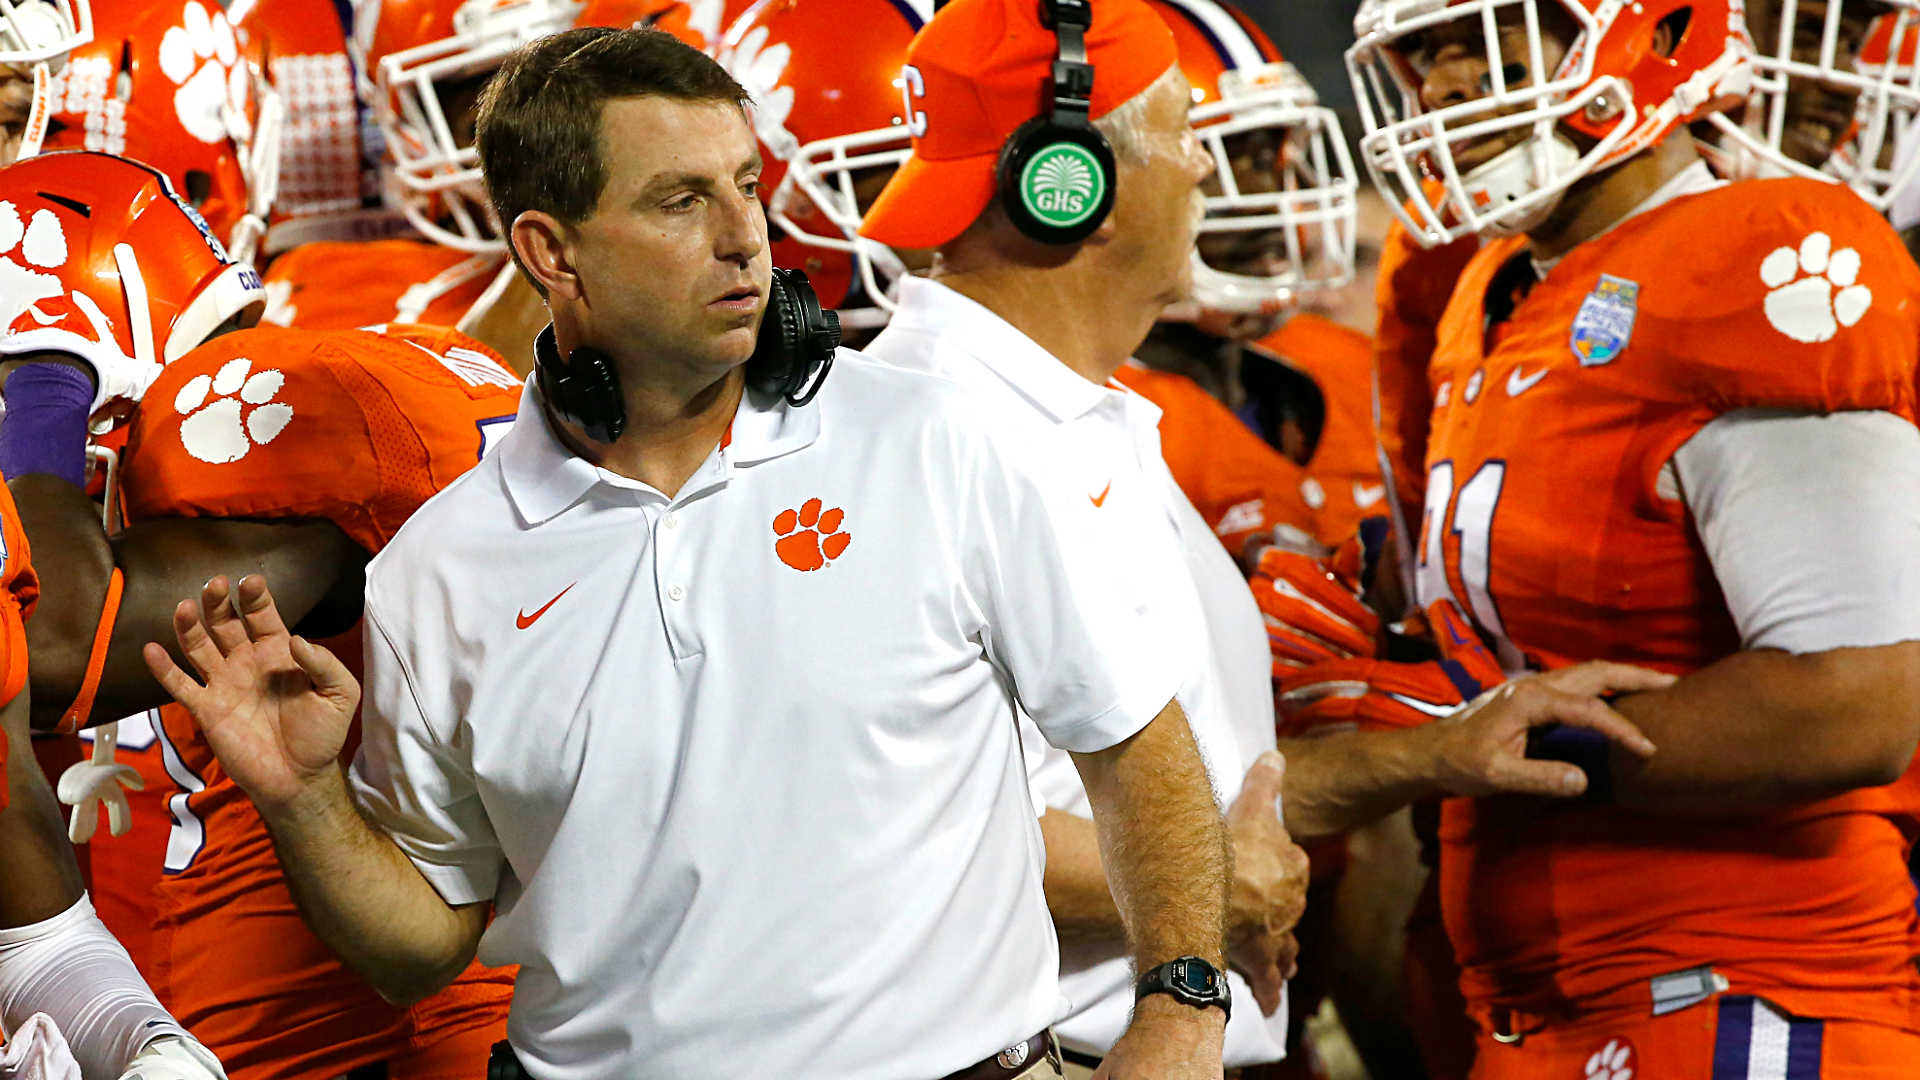 Dabo Swinney cancels appearance at fundraiser after pressure from students, LGBT groups